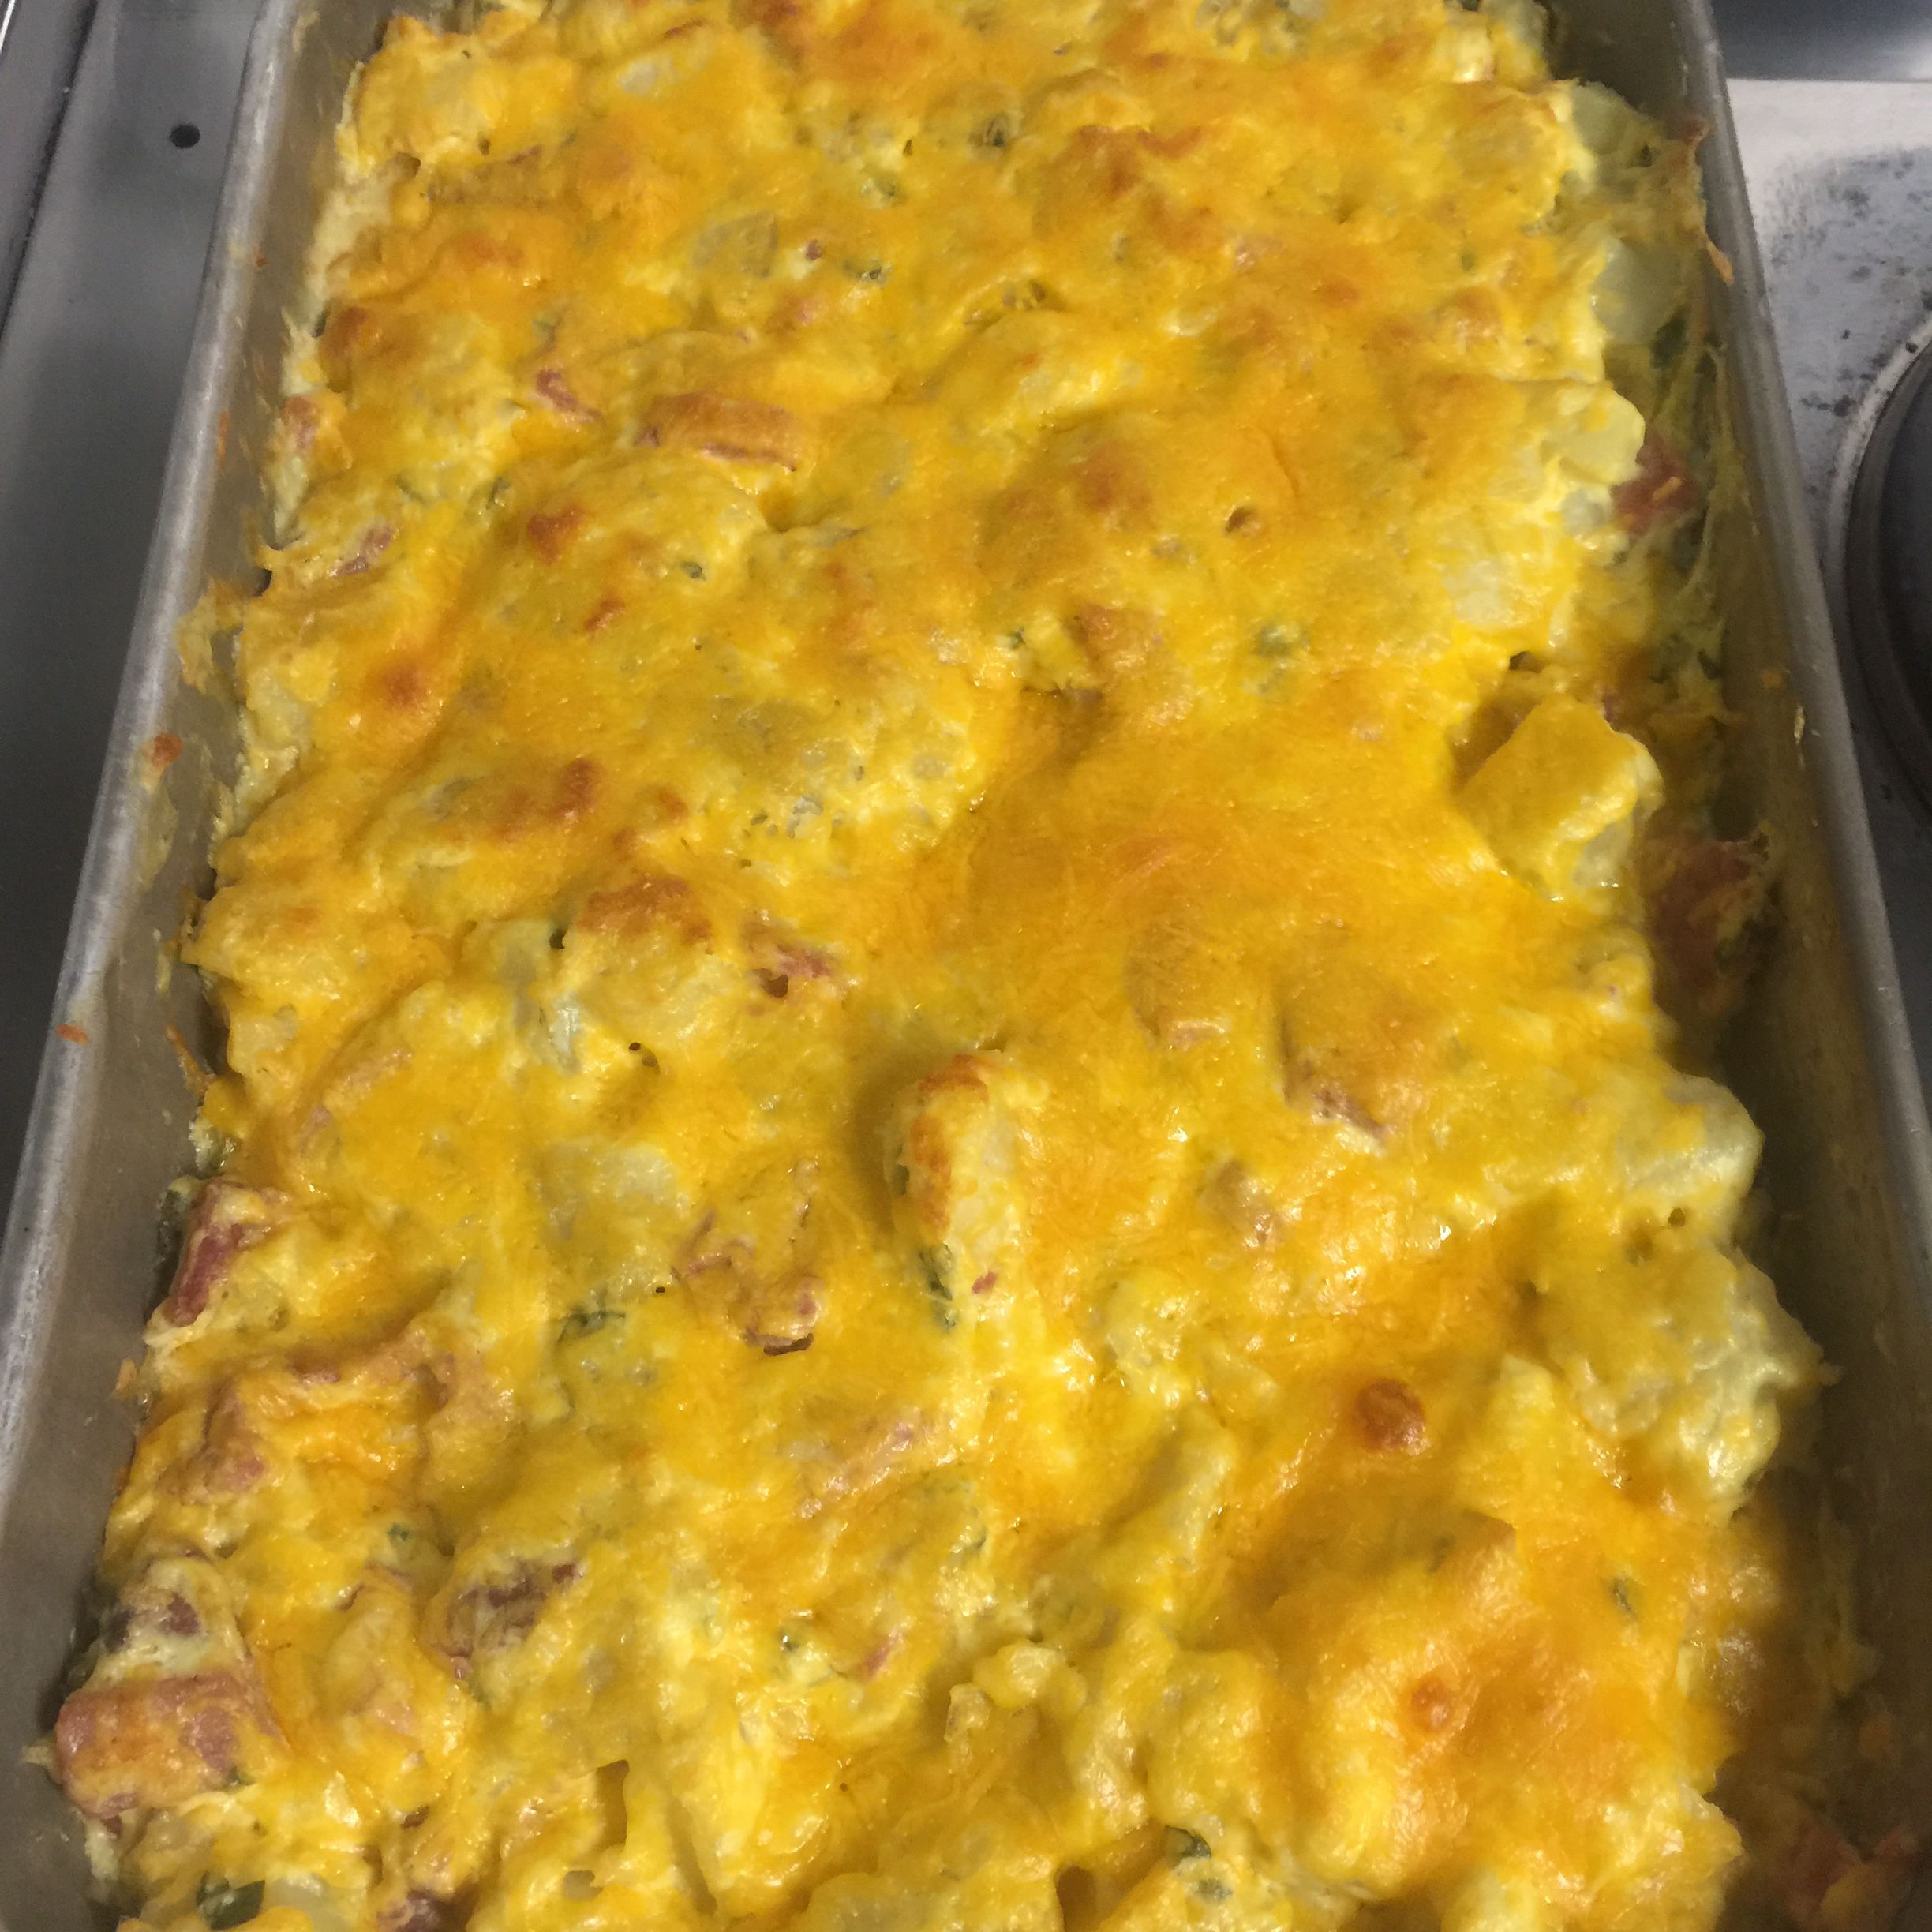 Easy Sour Cream Scalloped Potatoes Recipe In 2020 Sour Cream Potatoes Scalloped Potatoes Scalloped Potato Recipes